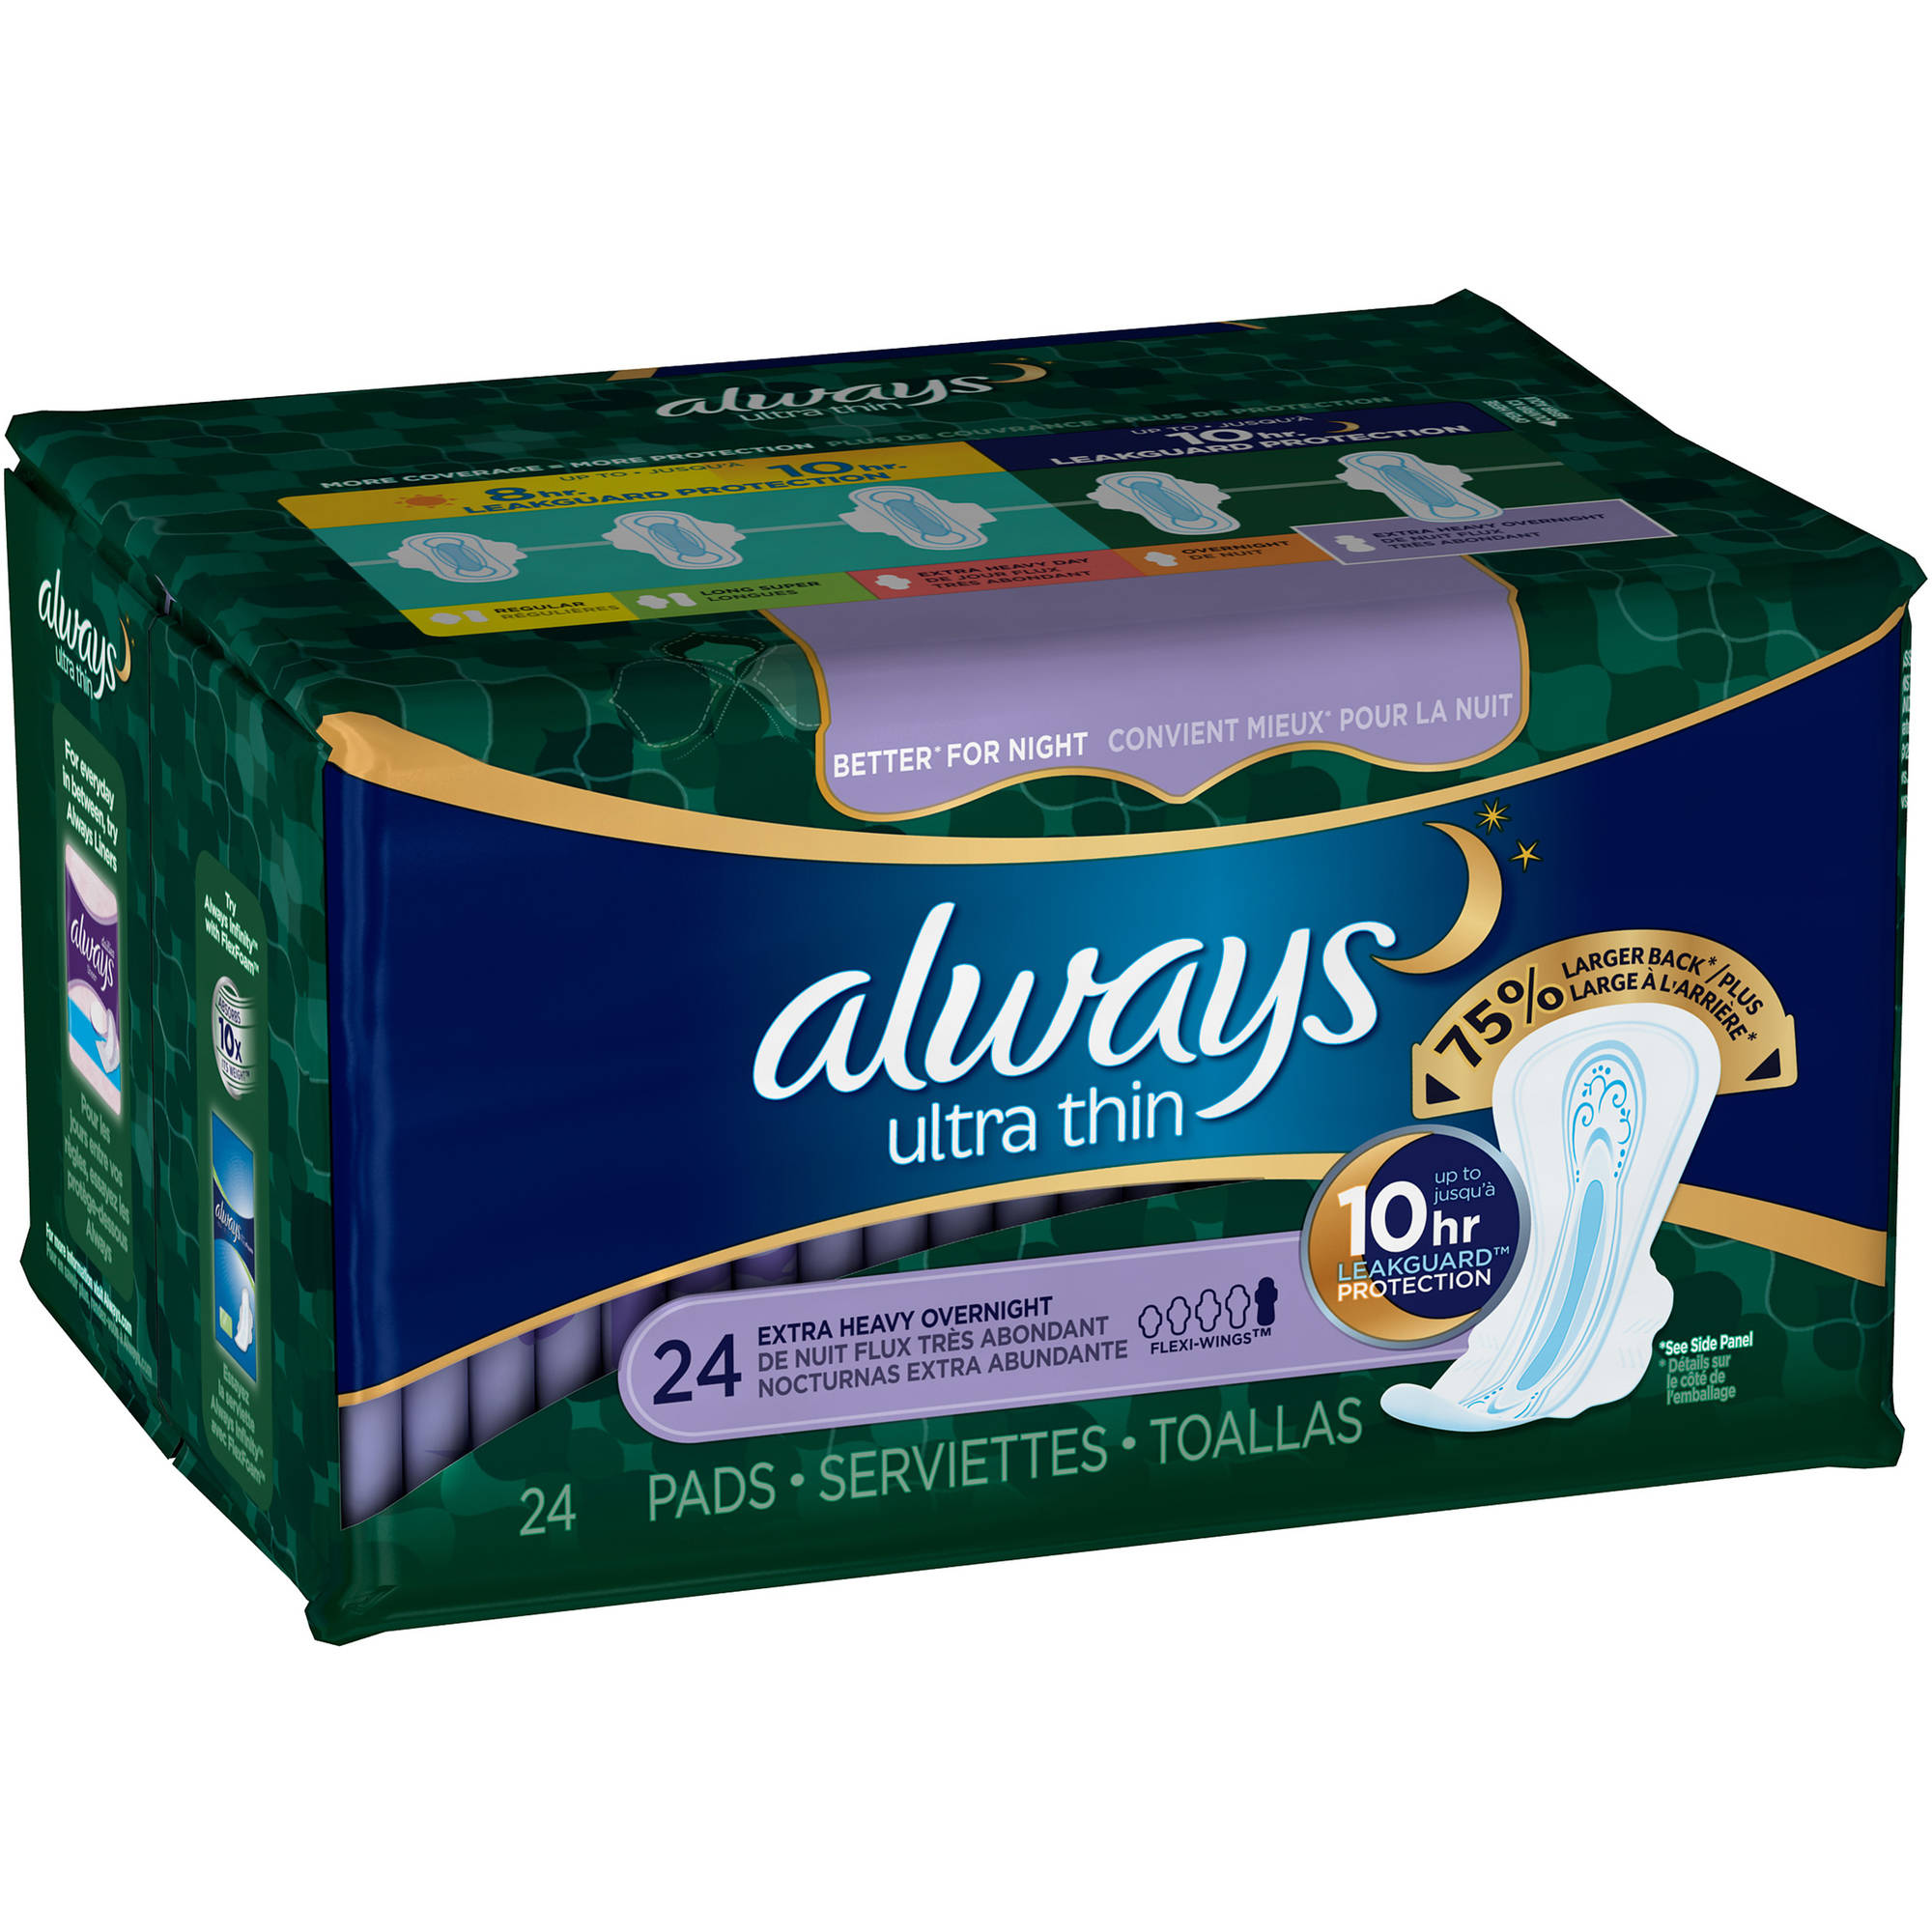 Always Ultra Thin Extra Heavy Overnight Pads, 24 count